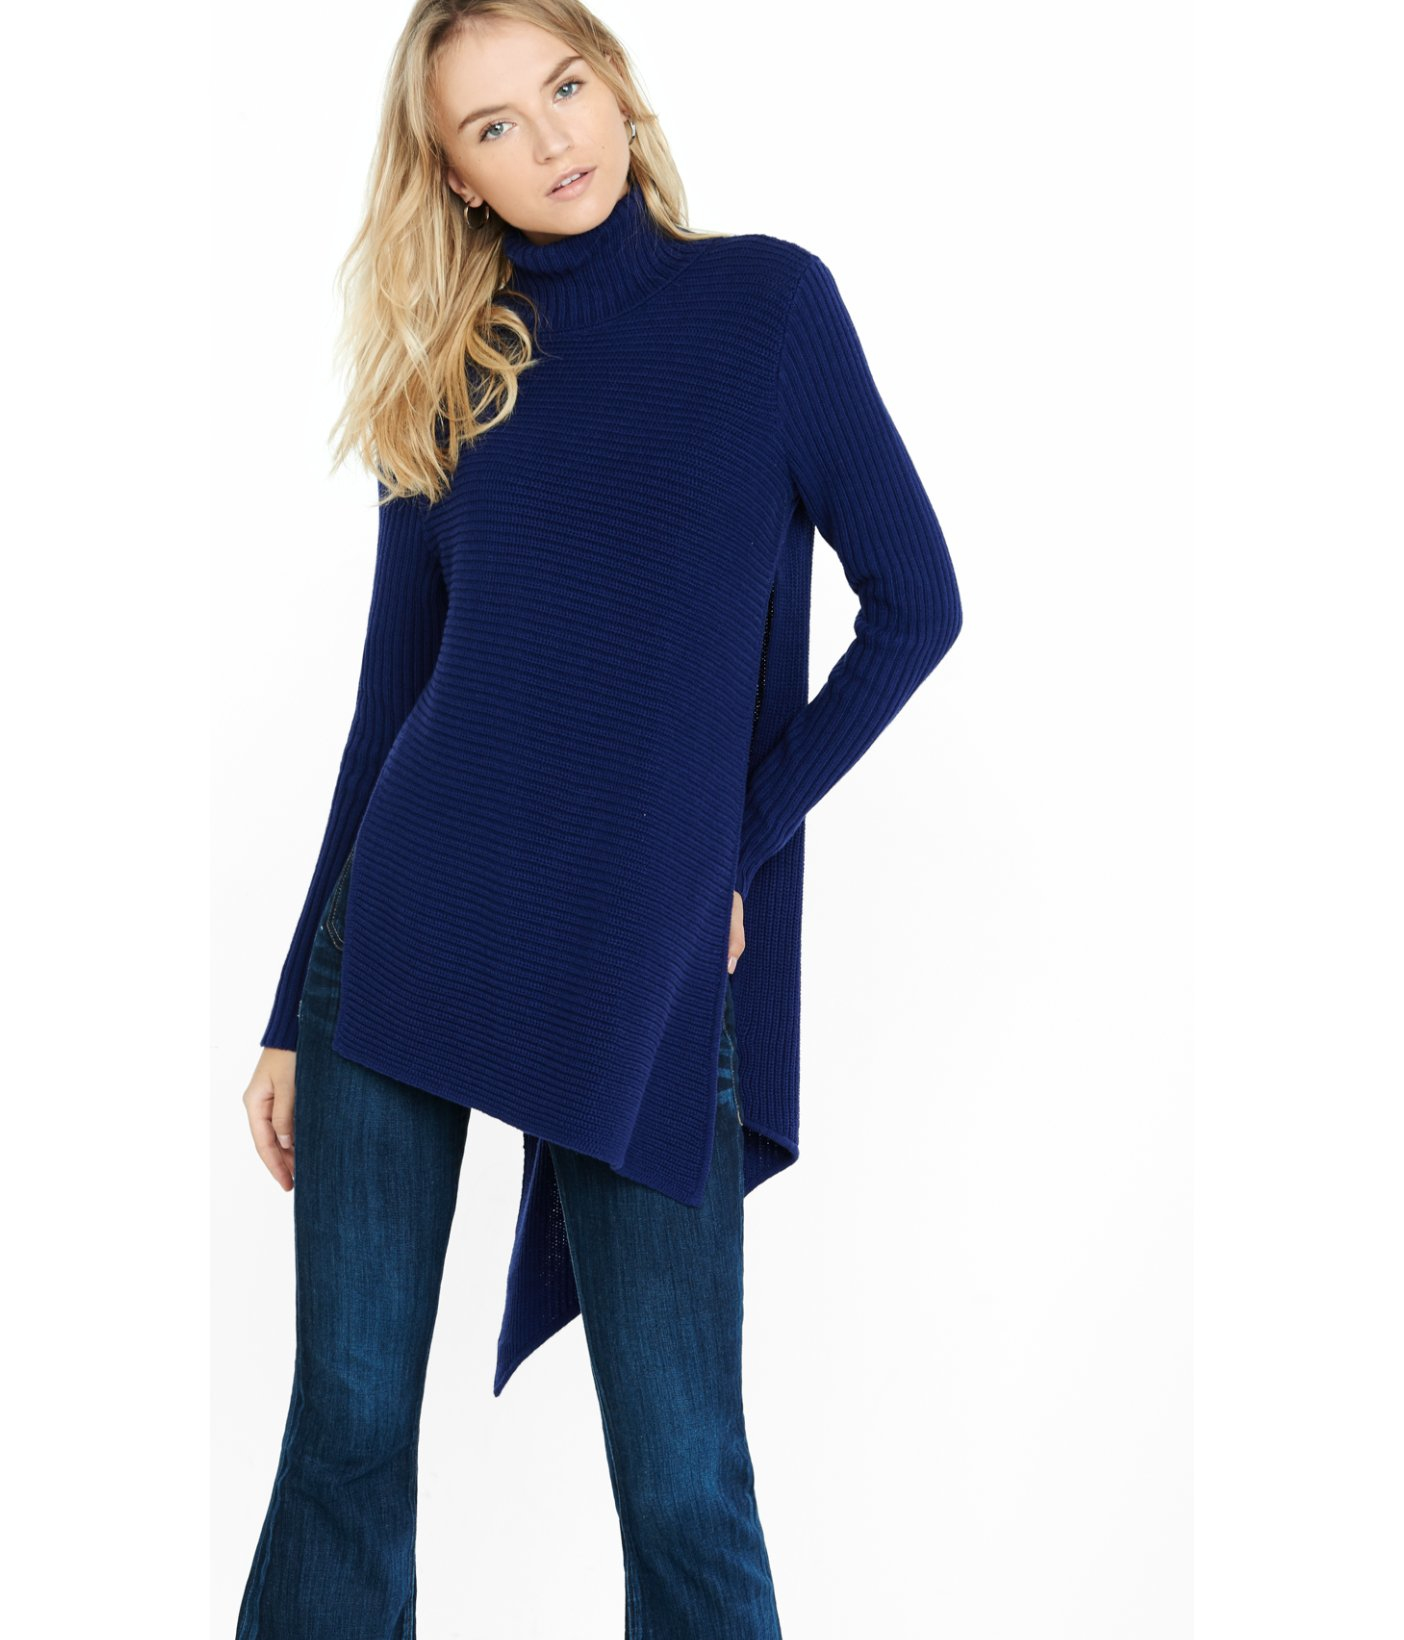 Express Mixed Knit High Slit Turtleneck Sweater in Blue | Lyst